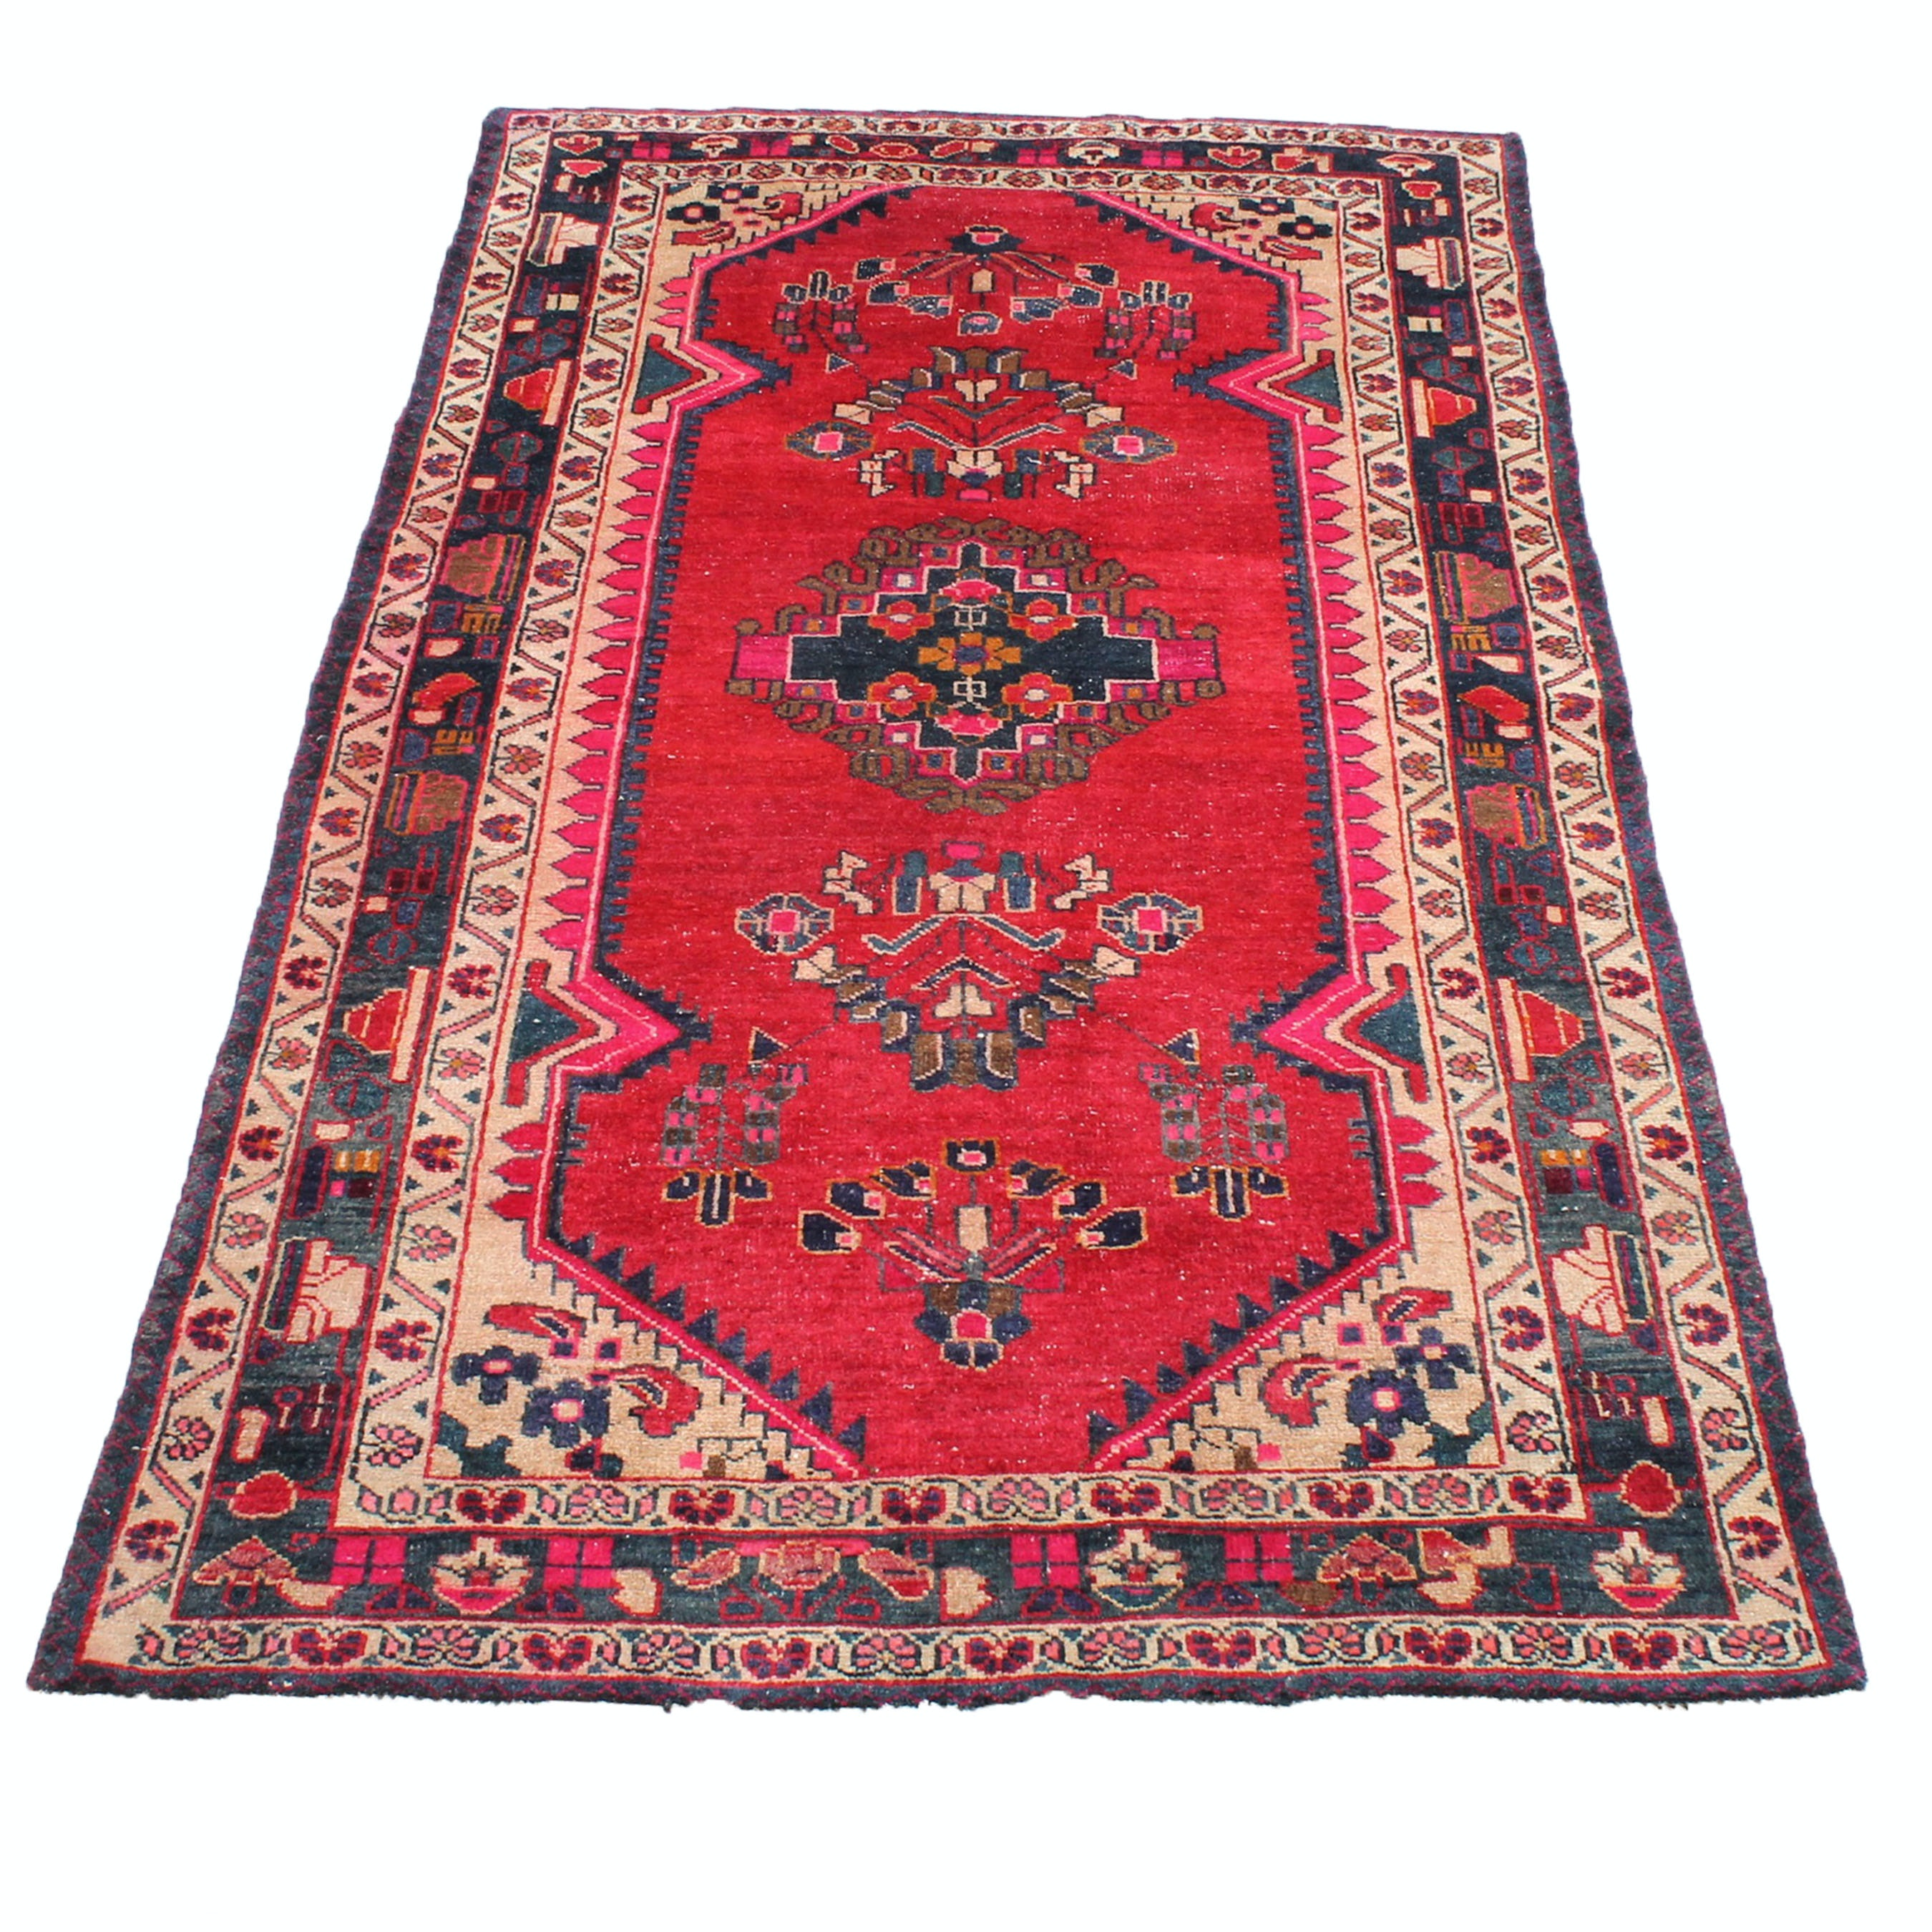 4' x 8' Semi-Antique Hand-Knotted Persian Mahal Sarouk Rug